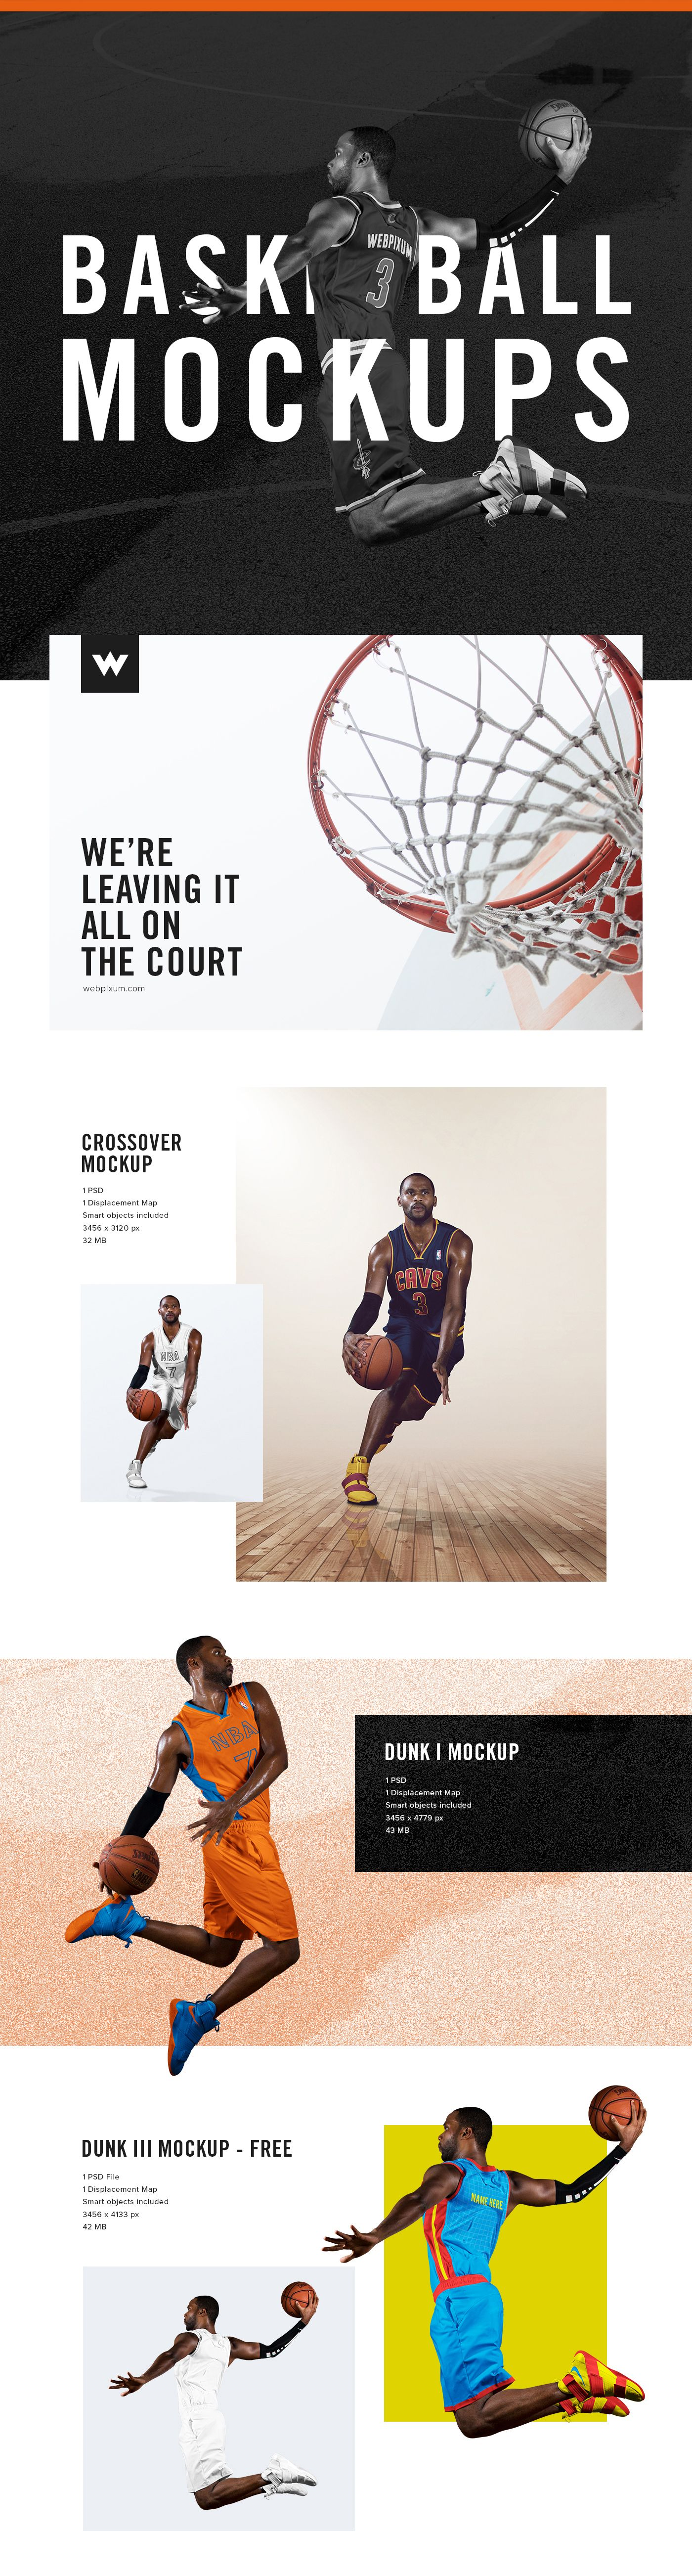 Nba Basketball Mockup Templates  Free Psd Download On Behance